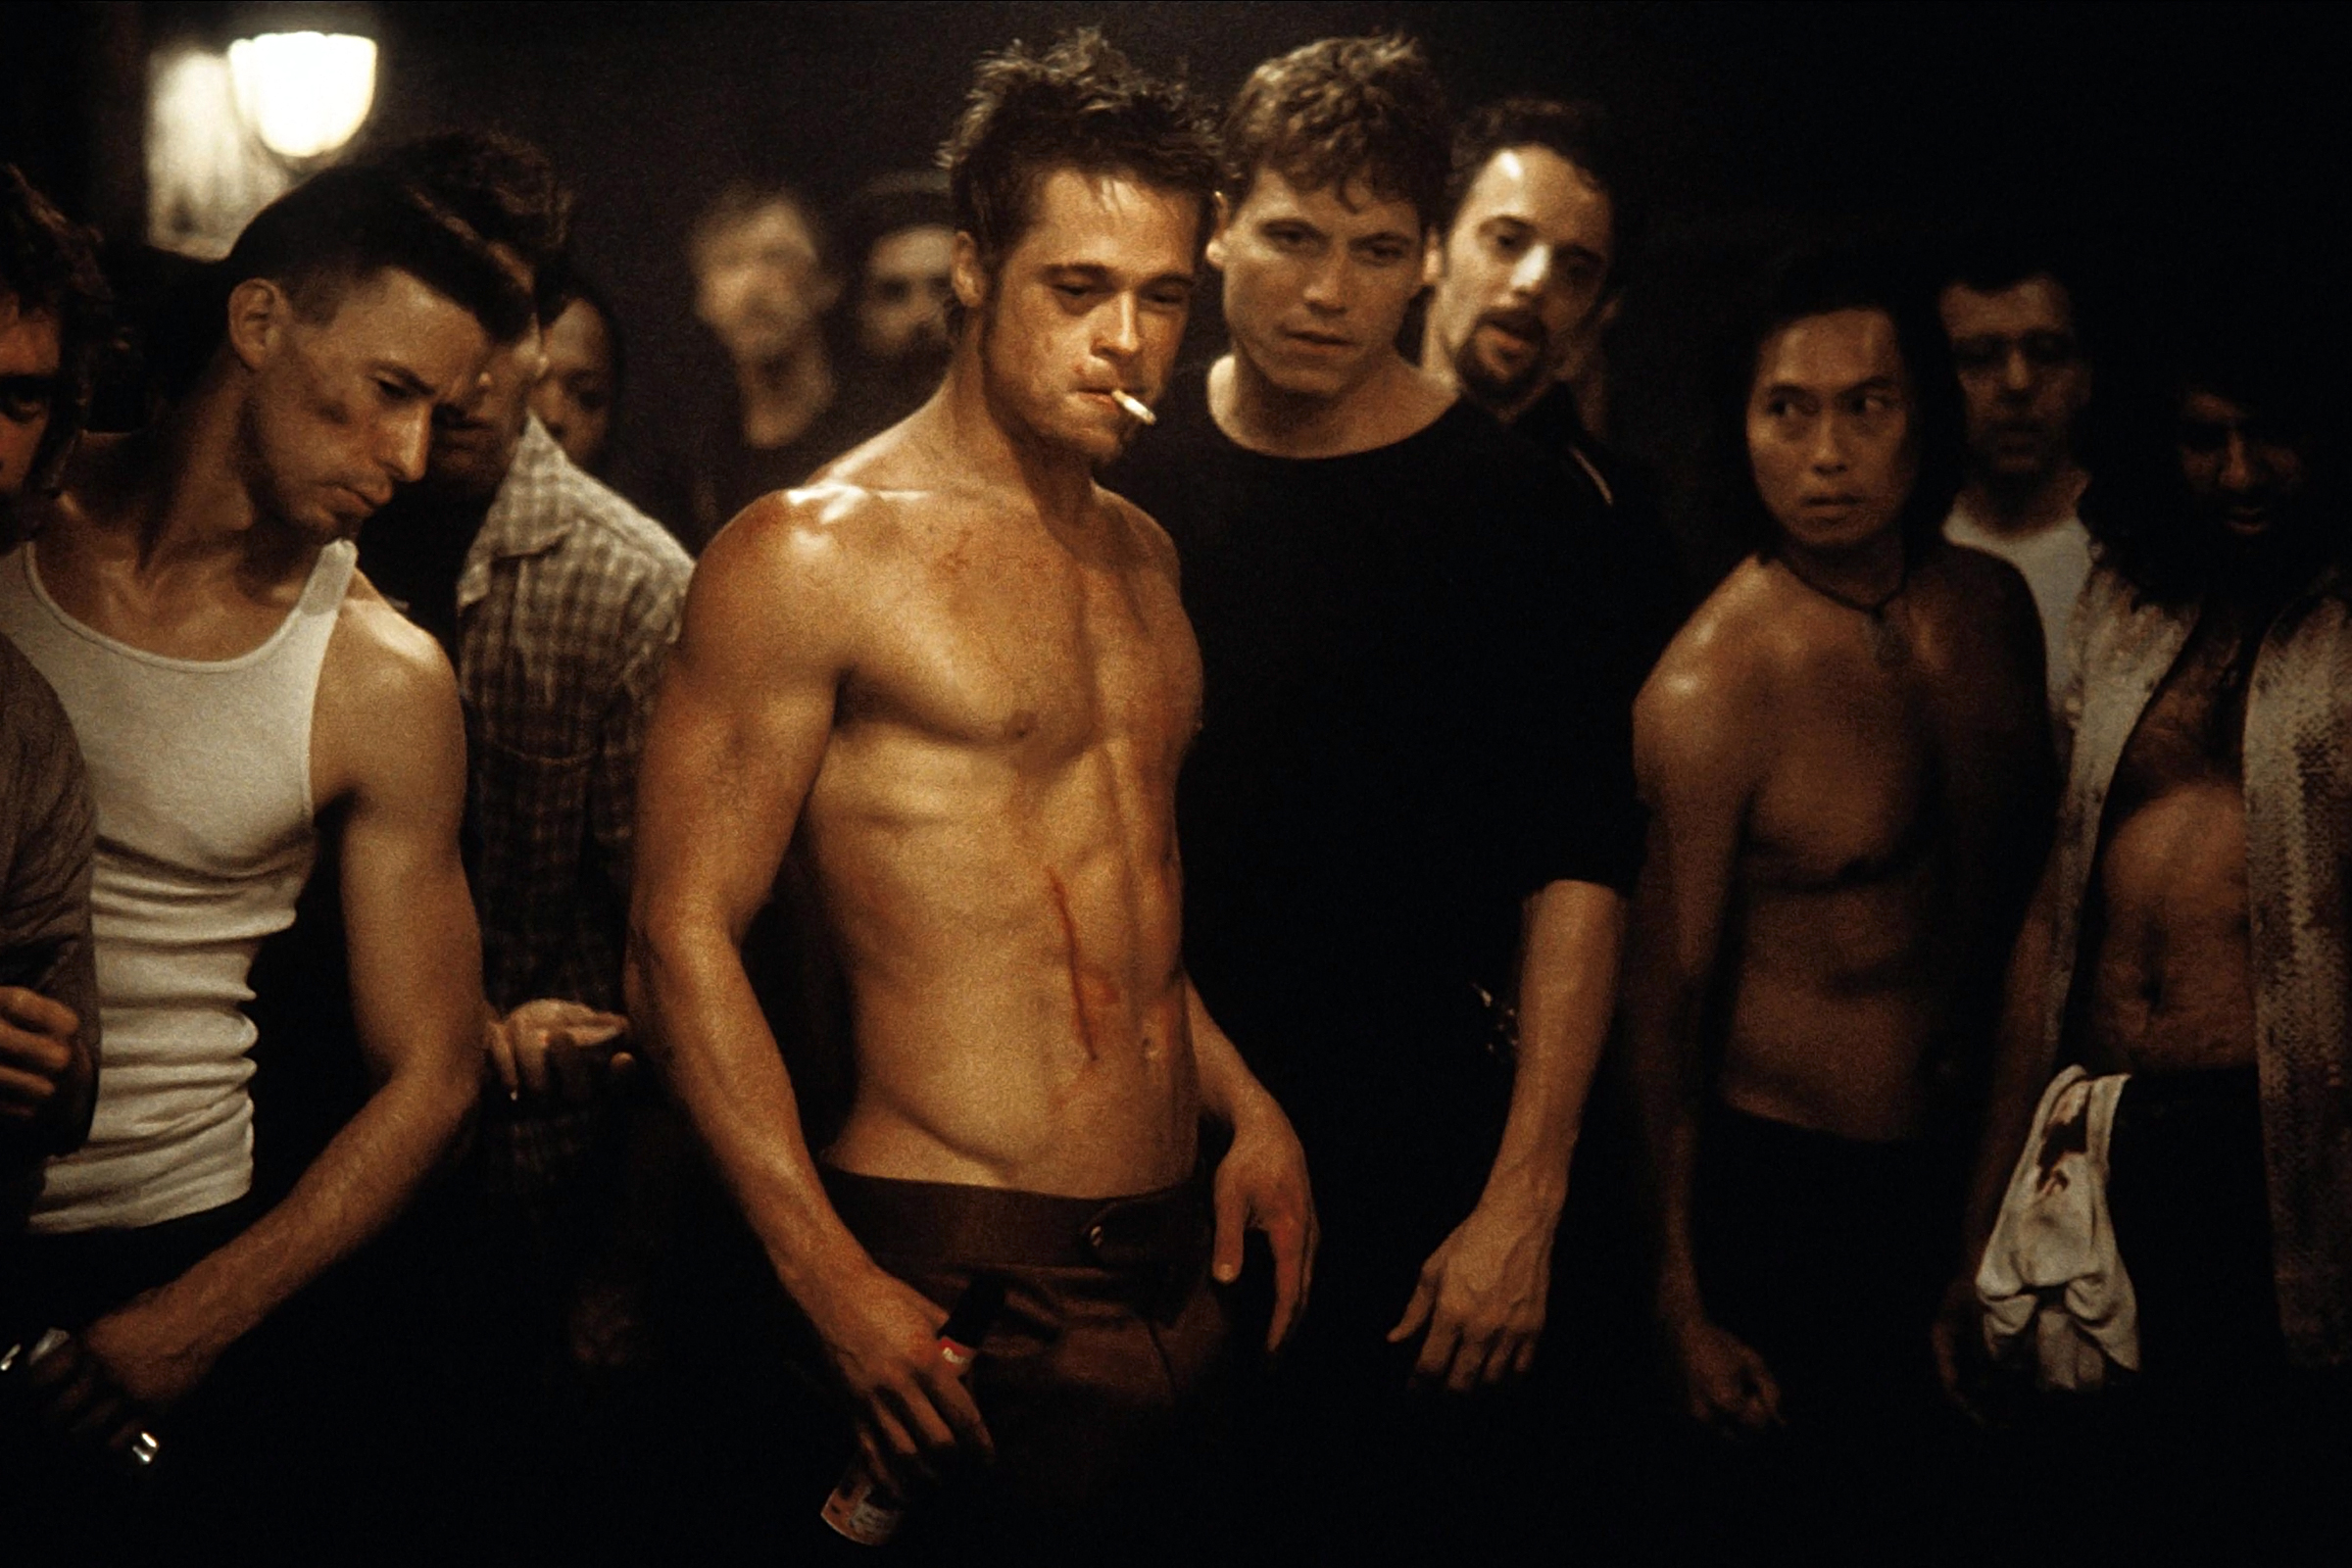 'Fight Club' at 20: The Twisted Joys of David Fincher's Toxic-Masculinity Sucker Punch